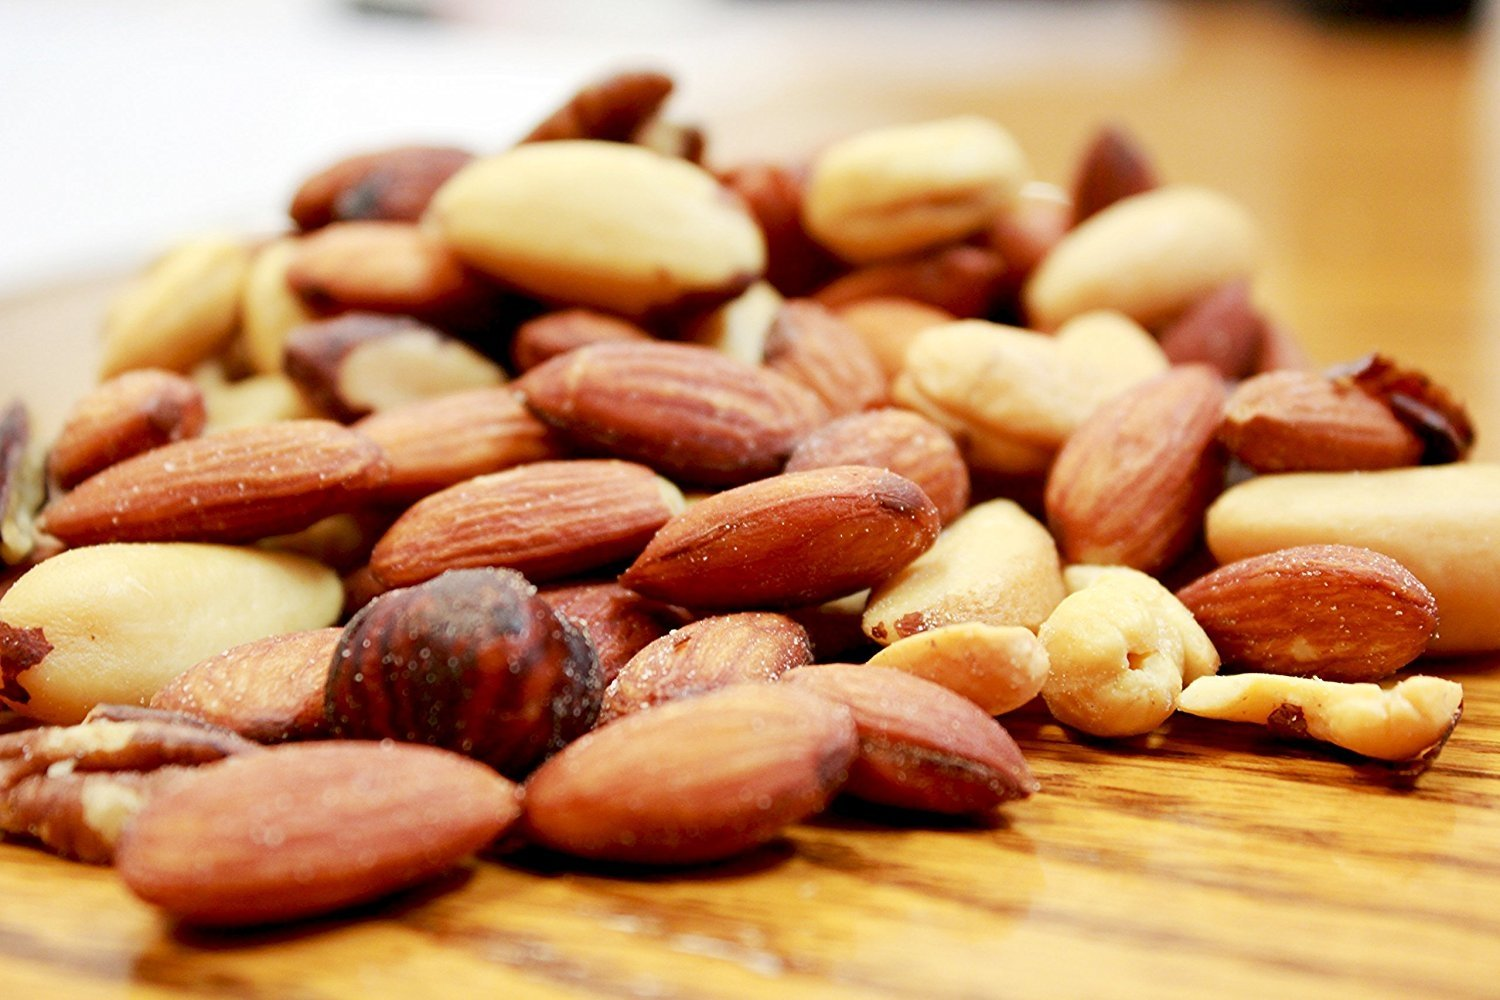 Deluxe Roasted and Salted Mixed Nuts (No Peanuts) by Its